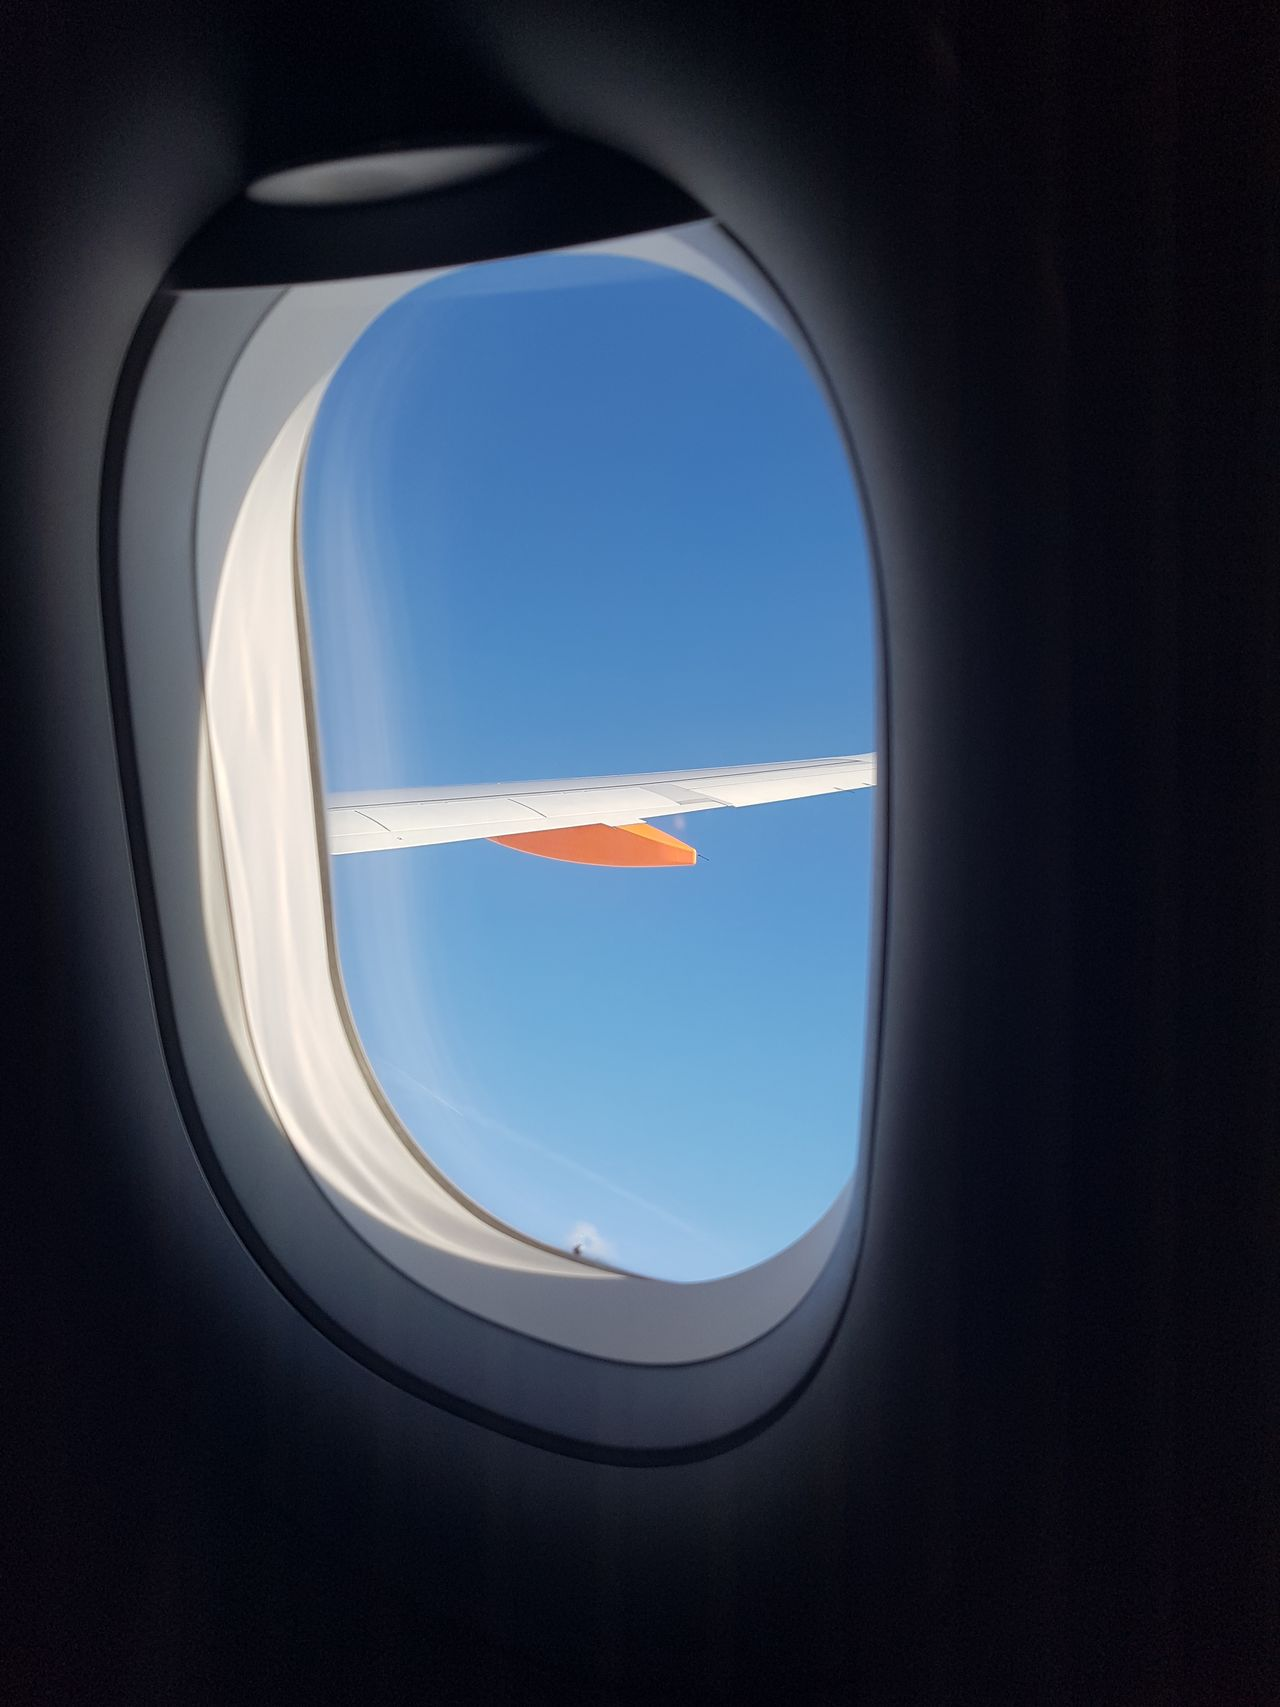 Airplane Journey Transportation Vehicle Interior Airplane Wing 1/1618 Sec Window Travel Indoors  Flying Air Vehicle Sky No People Nature Day via Fotofall